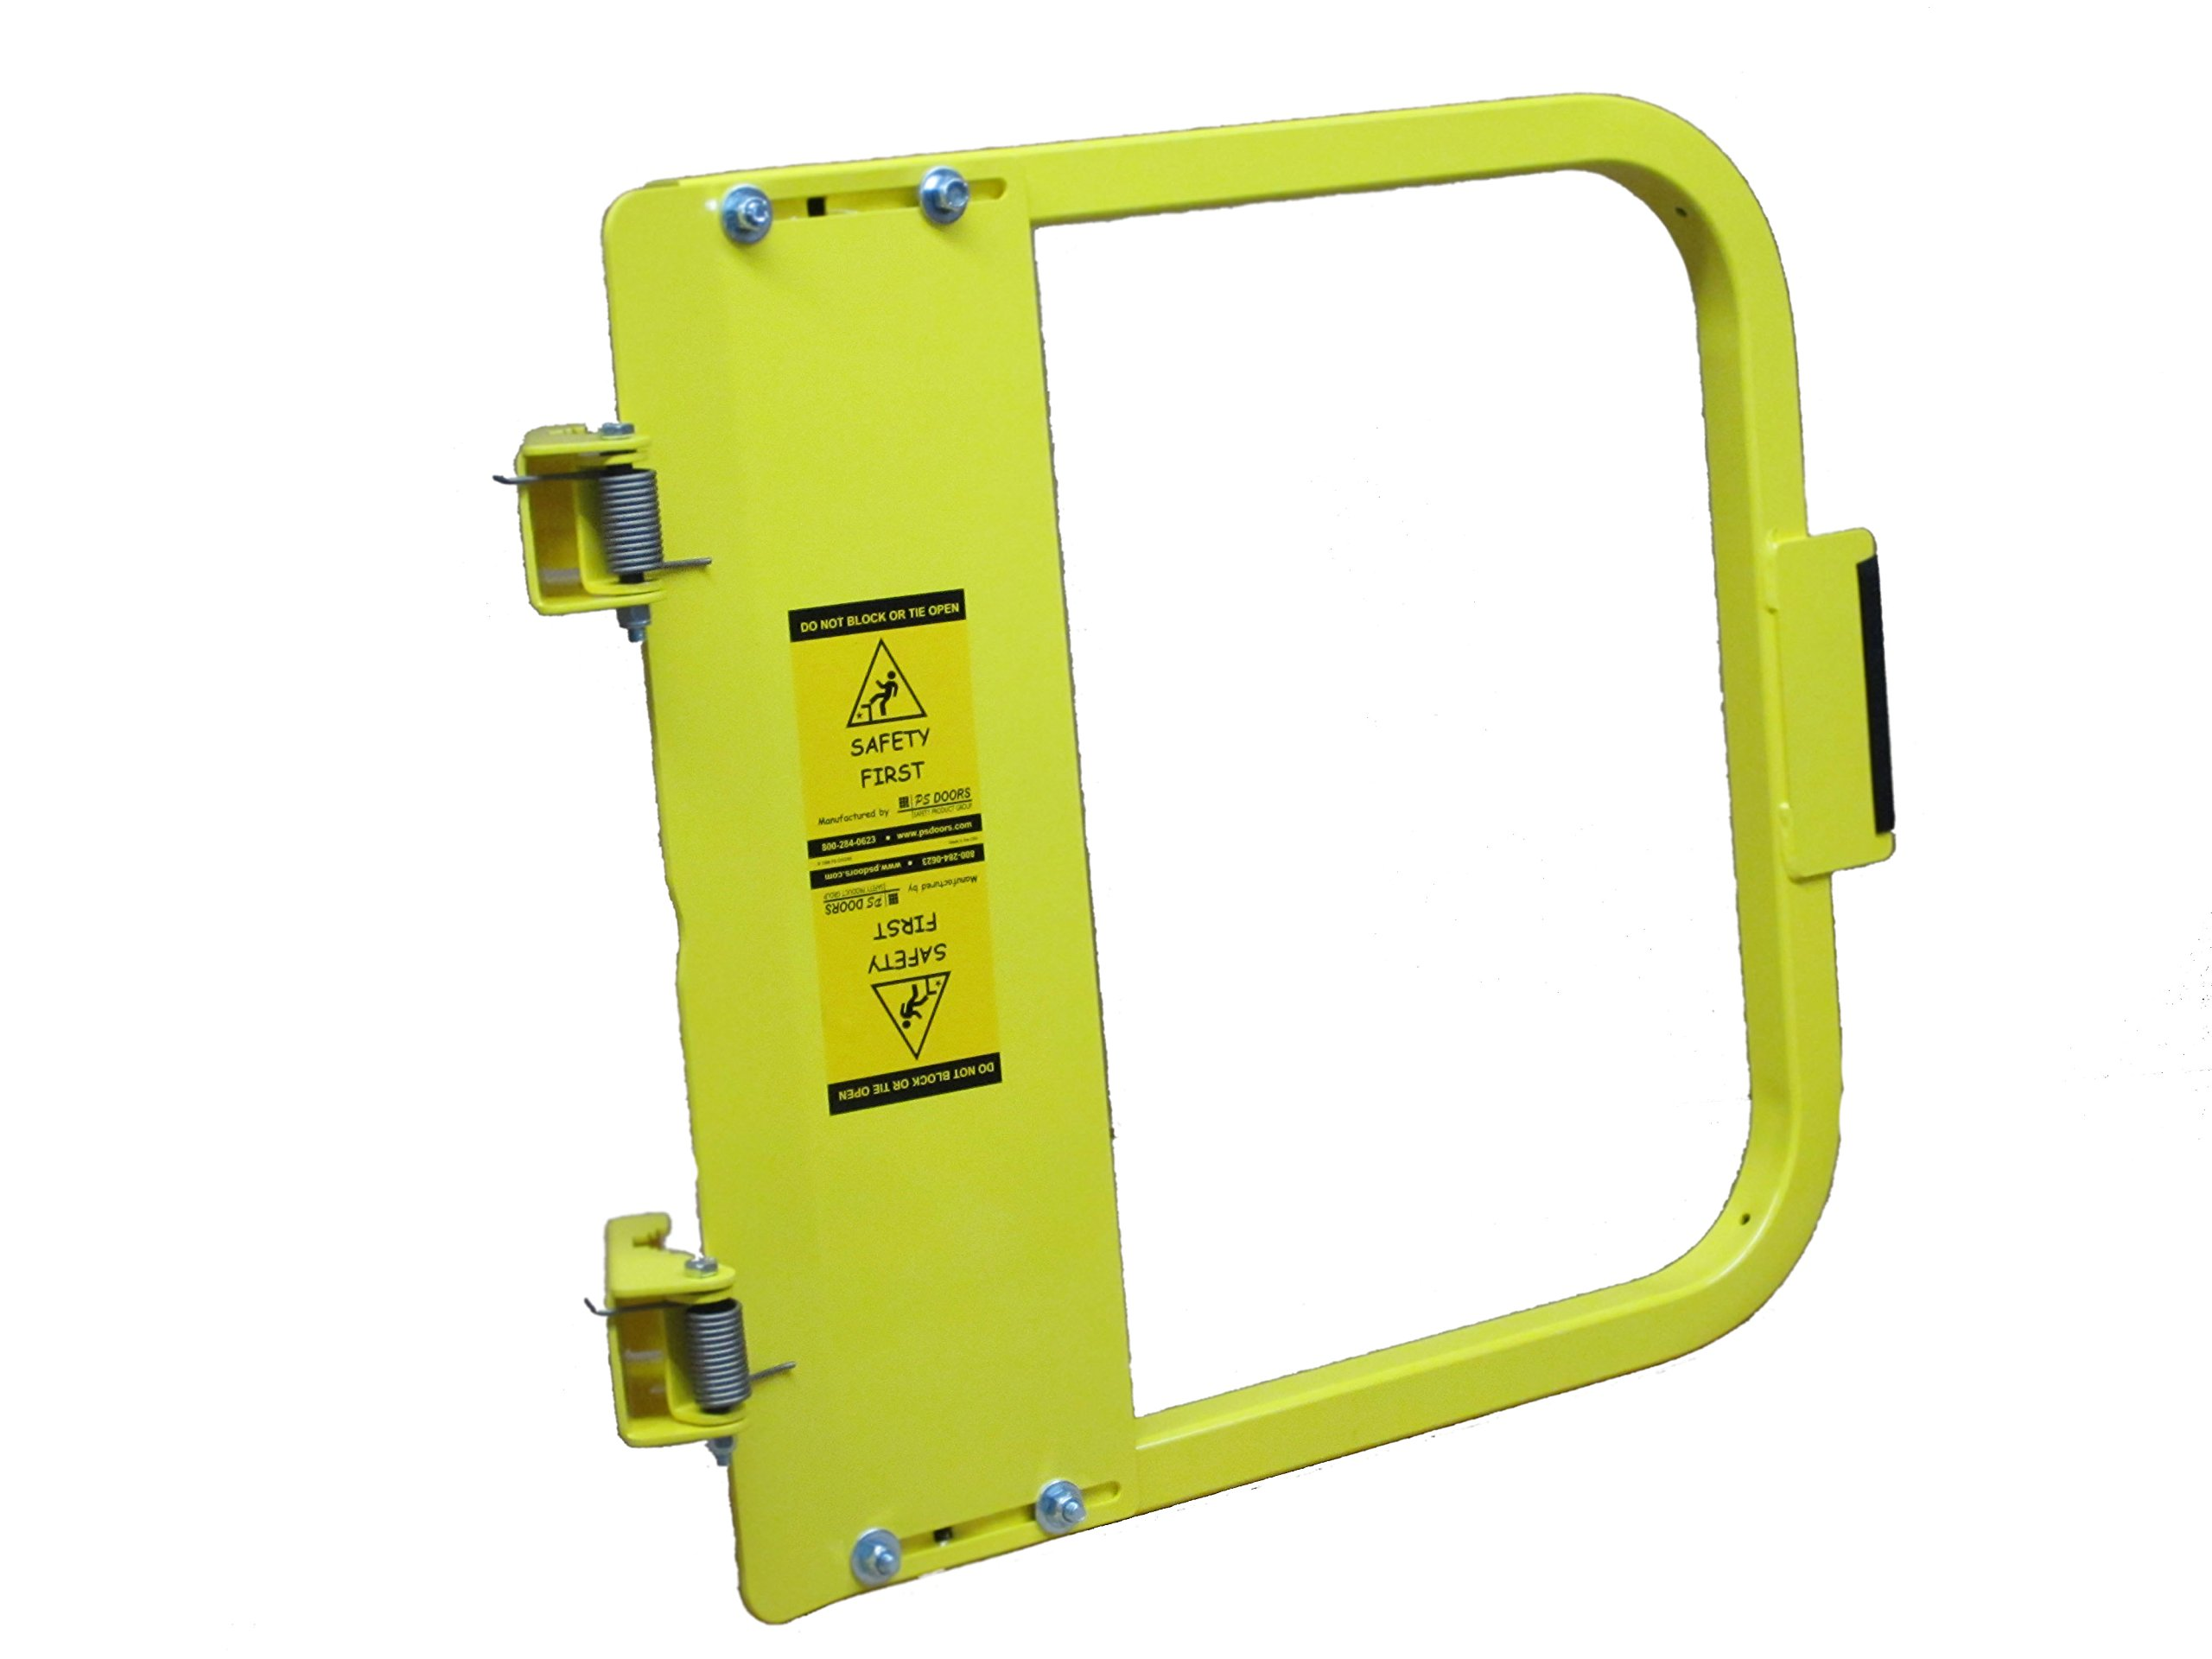 PS DOORS LSG-21-PCY Ladder Safety Gate Mild Carbon Steel, Powder Coat Yellow, Fits Opening 19-3/4'' to 23-1/2'', Each